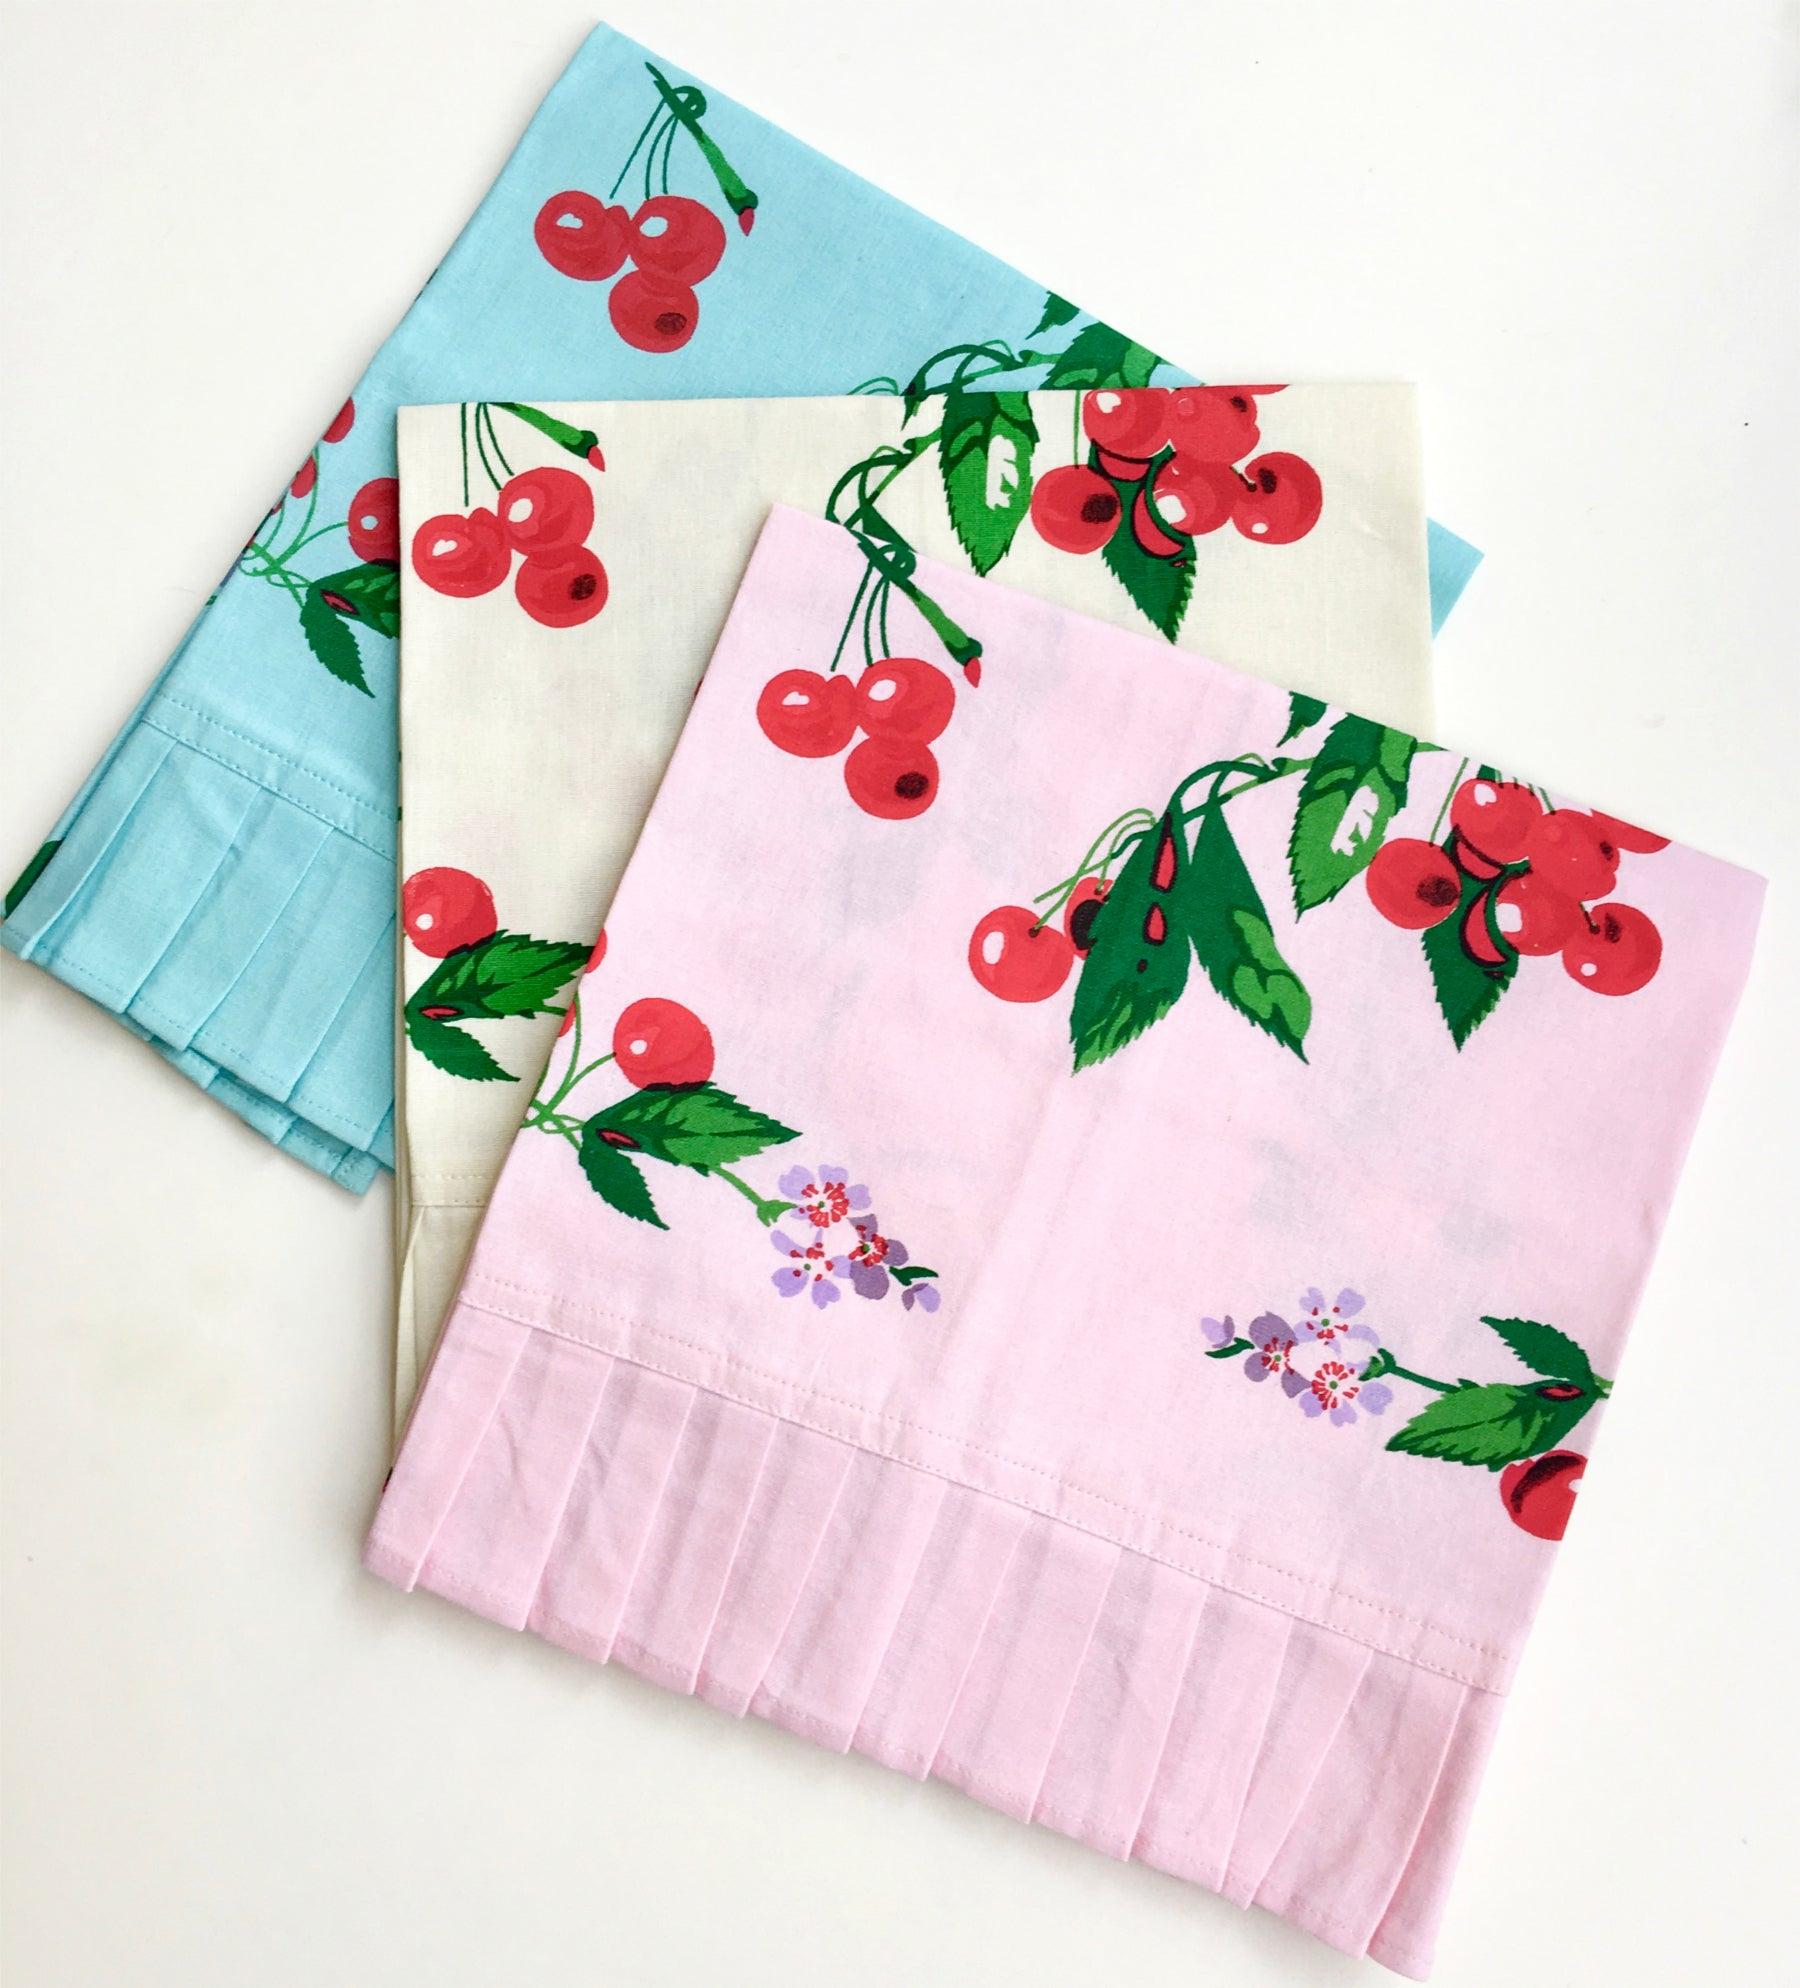 Retro Cherry Tea Towels - 1950's Vintage Inspired Kitchen